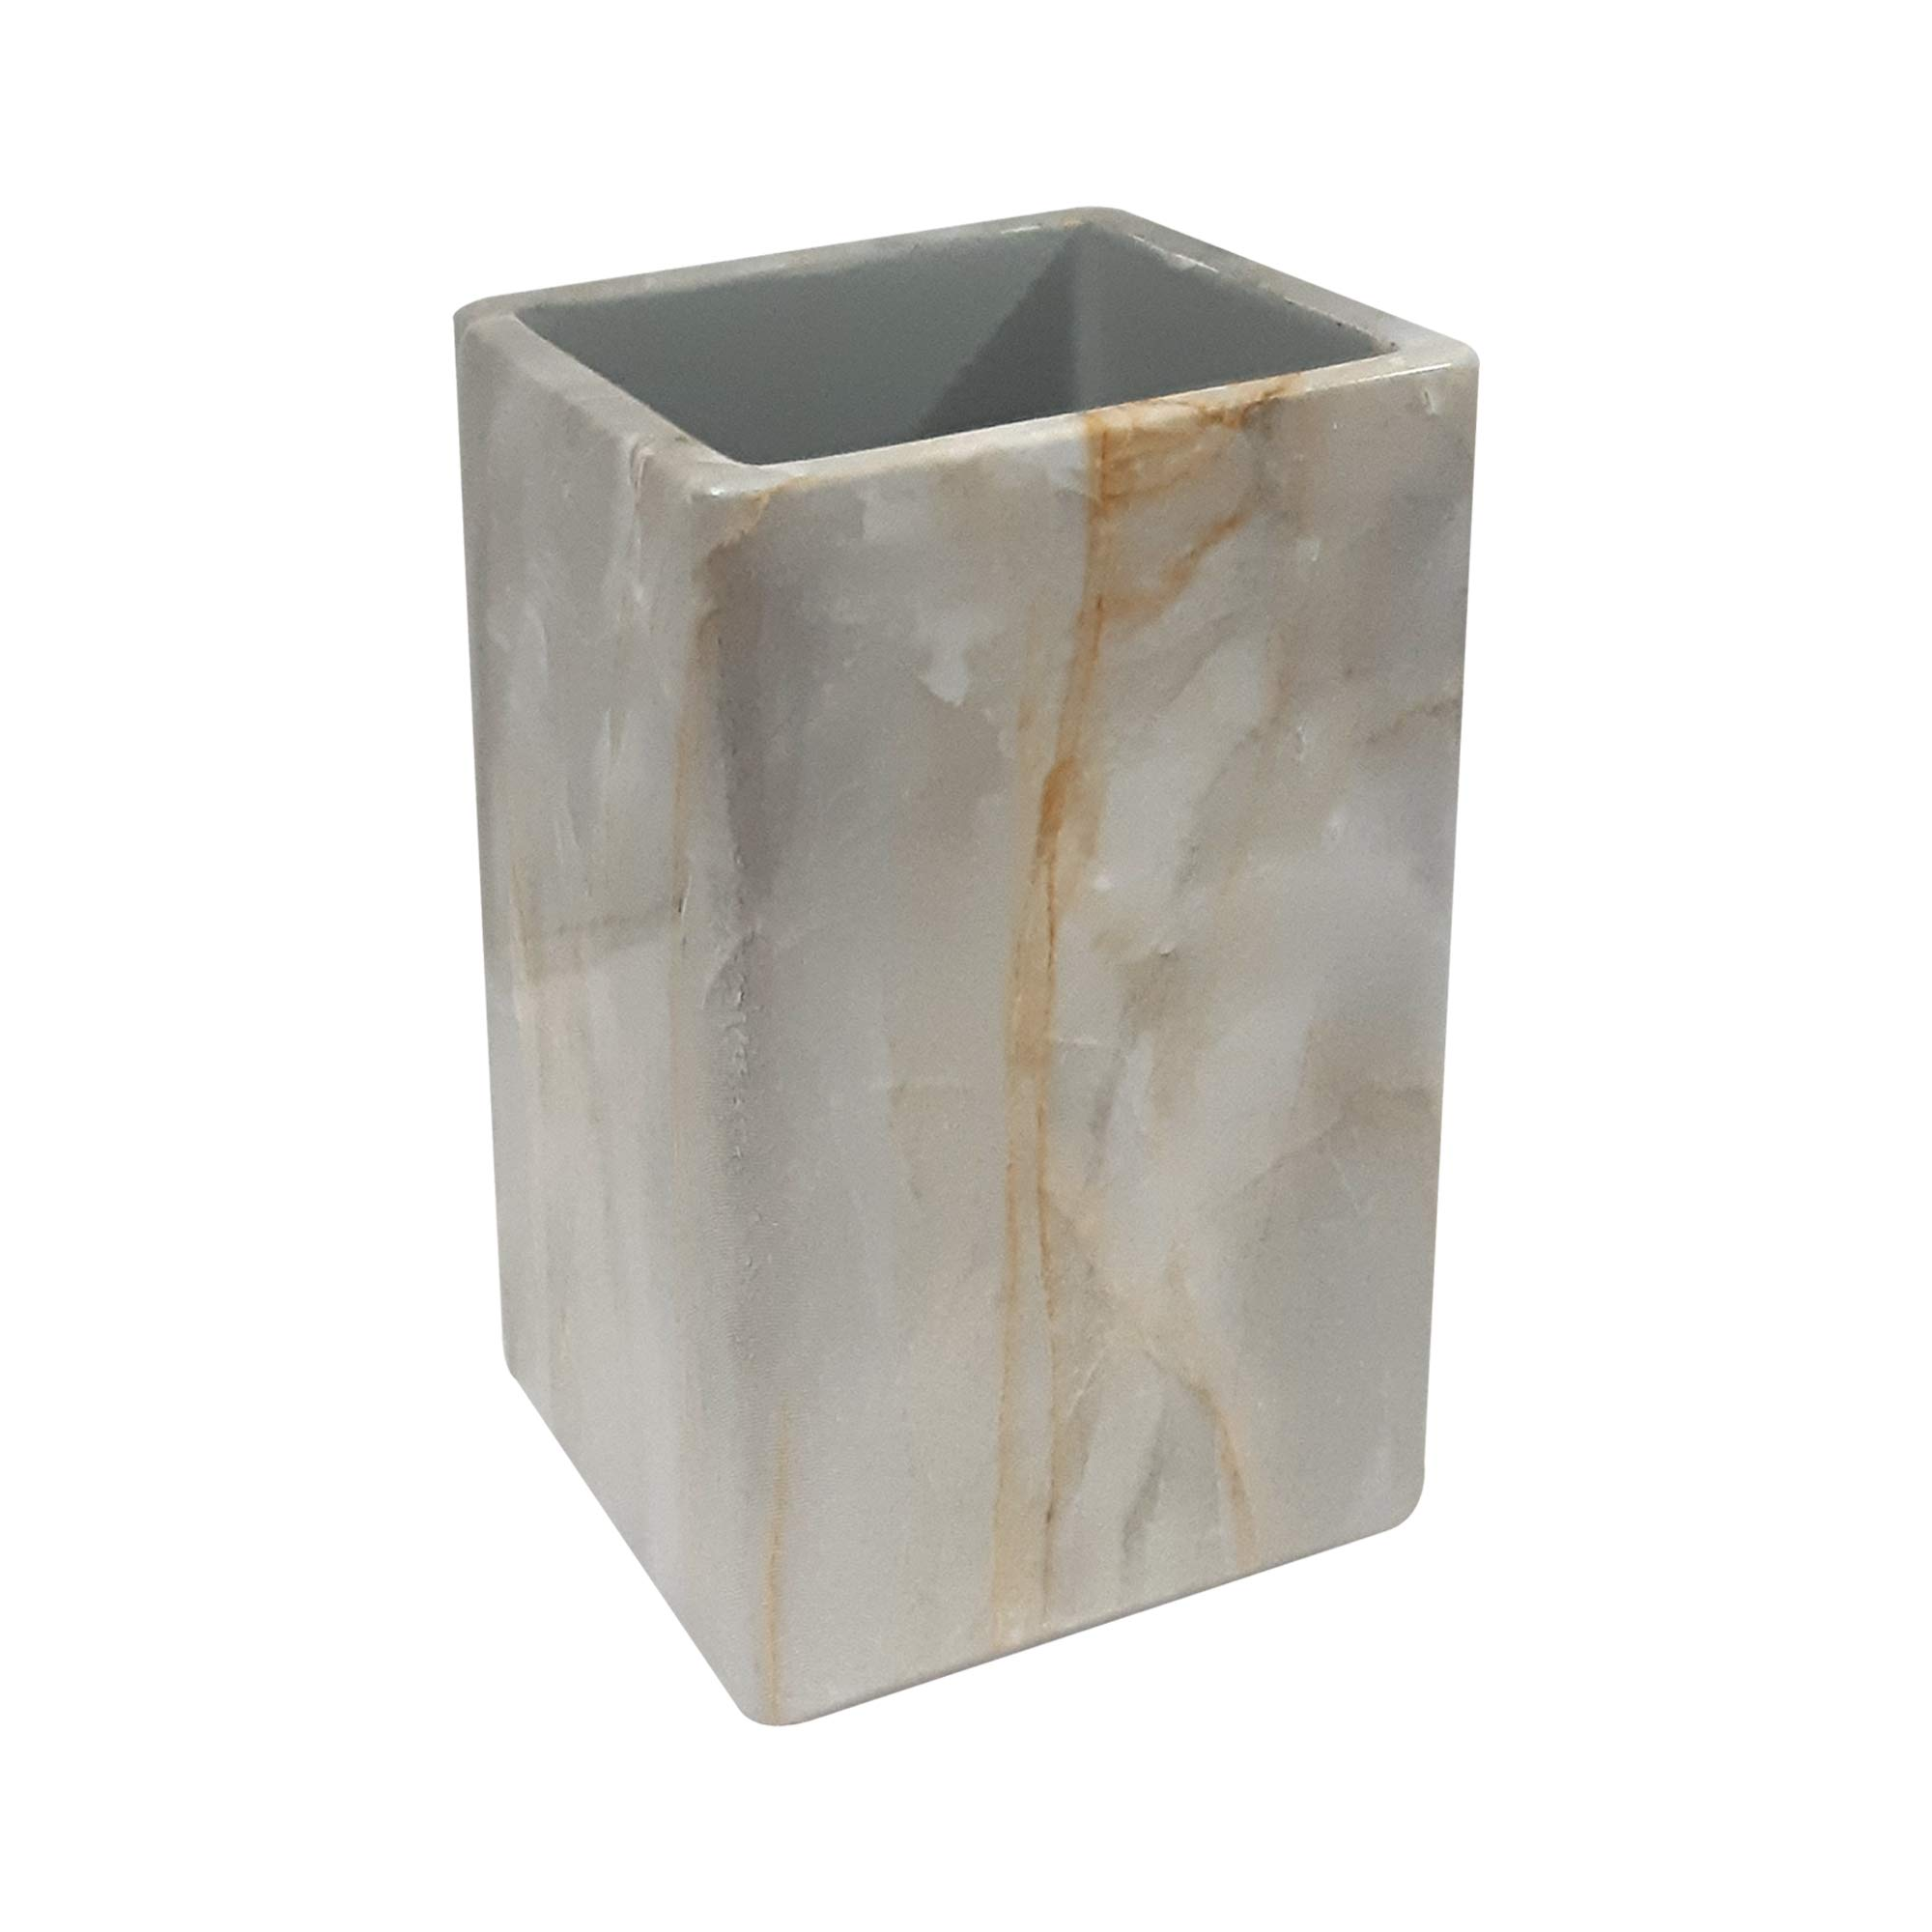 nu steel RES566-5H Stone-Hedge Collection Resin Decorative Makeup Brush Cup Holder Tumblers for Bathroom Countertops, Desk, Dorm, and Vanity, Marble Finish by nu steel